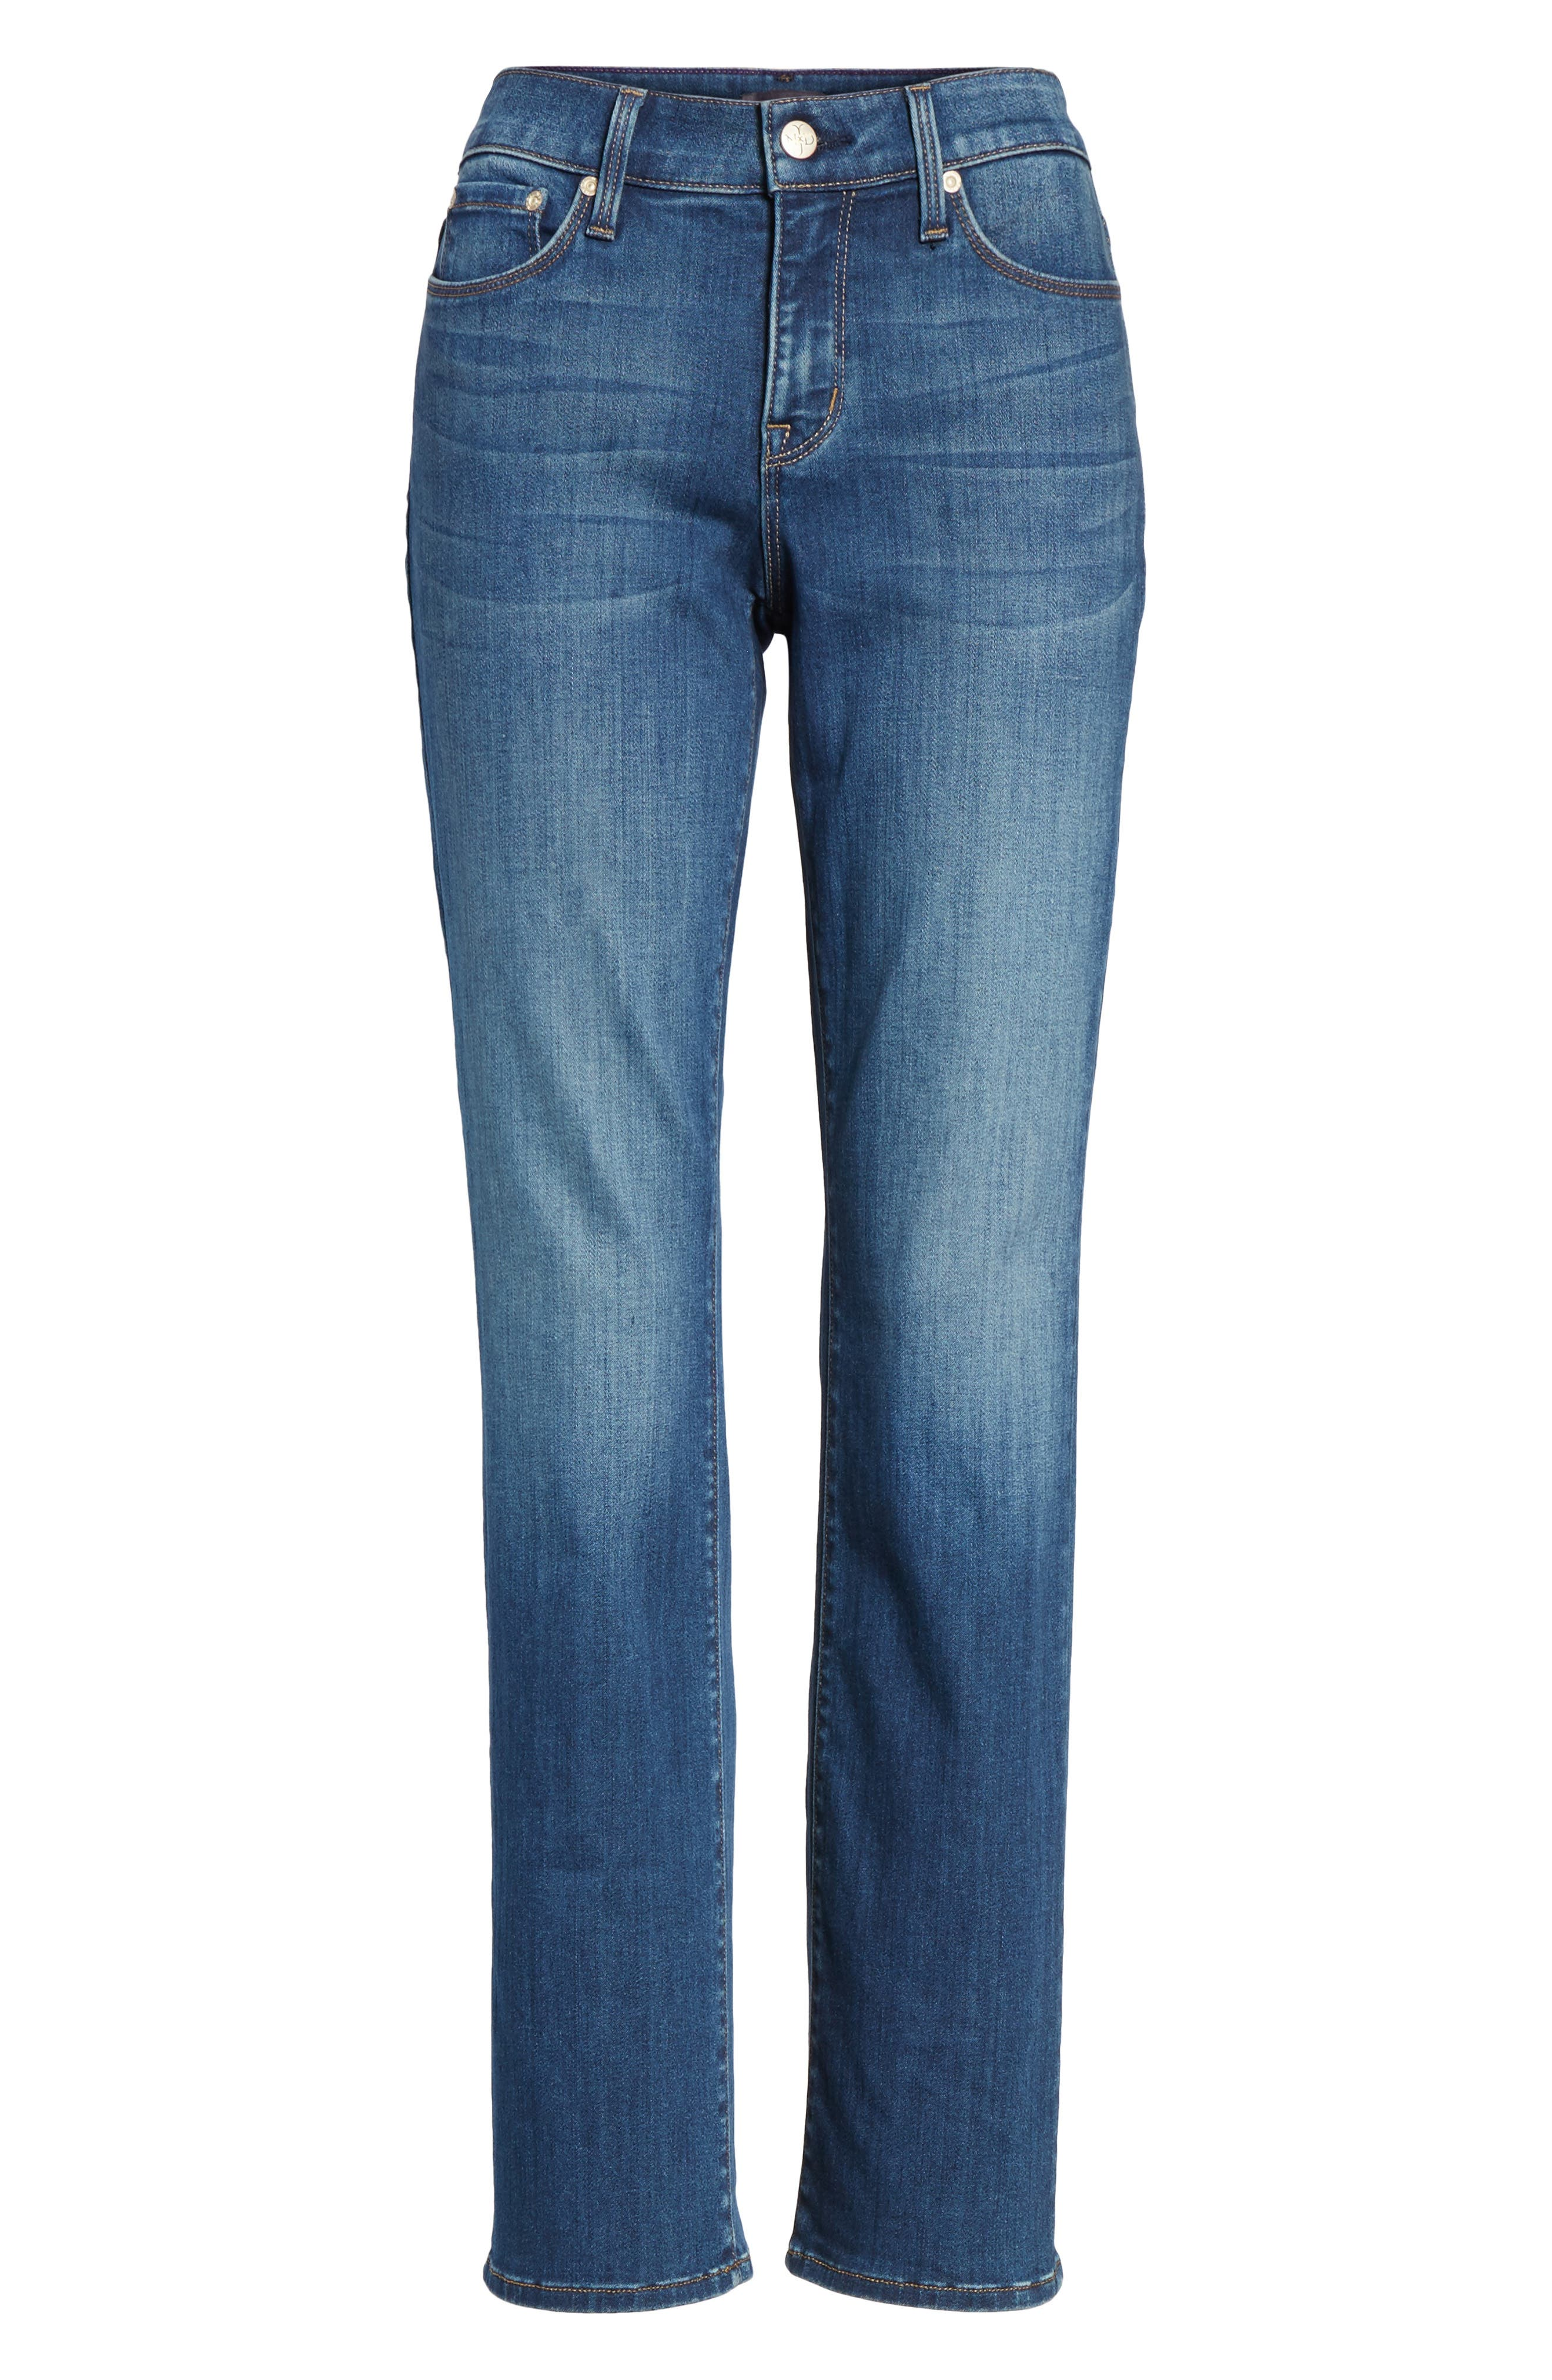 Marilyn Stretch Straight Leg Jeans,                             Alternate thumbnail 6, color,